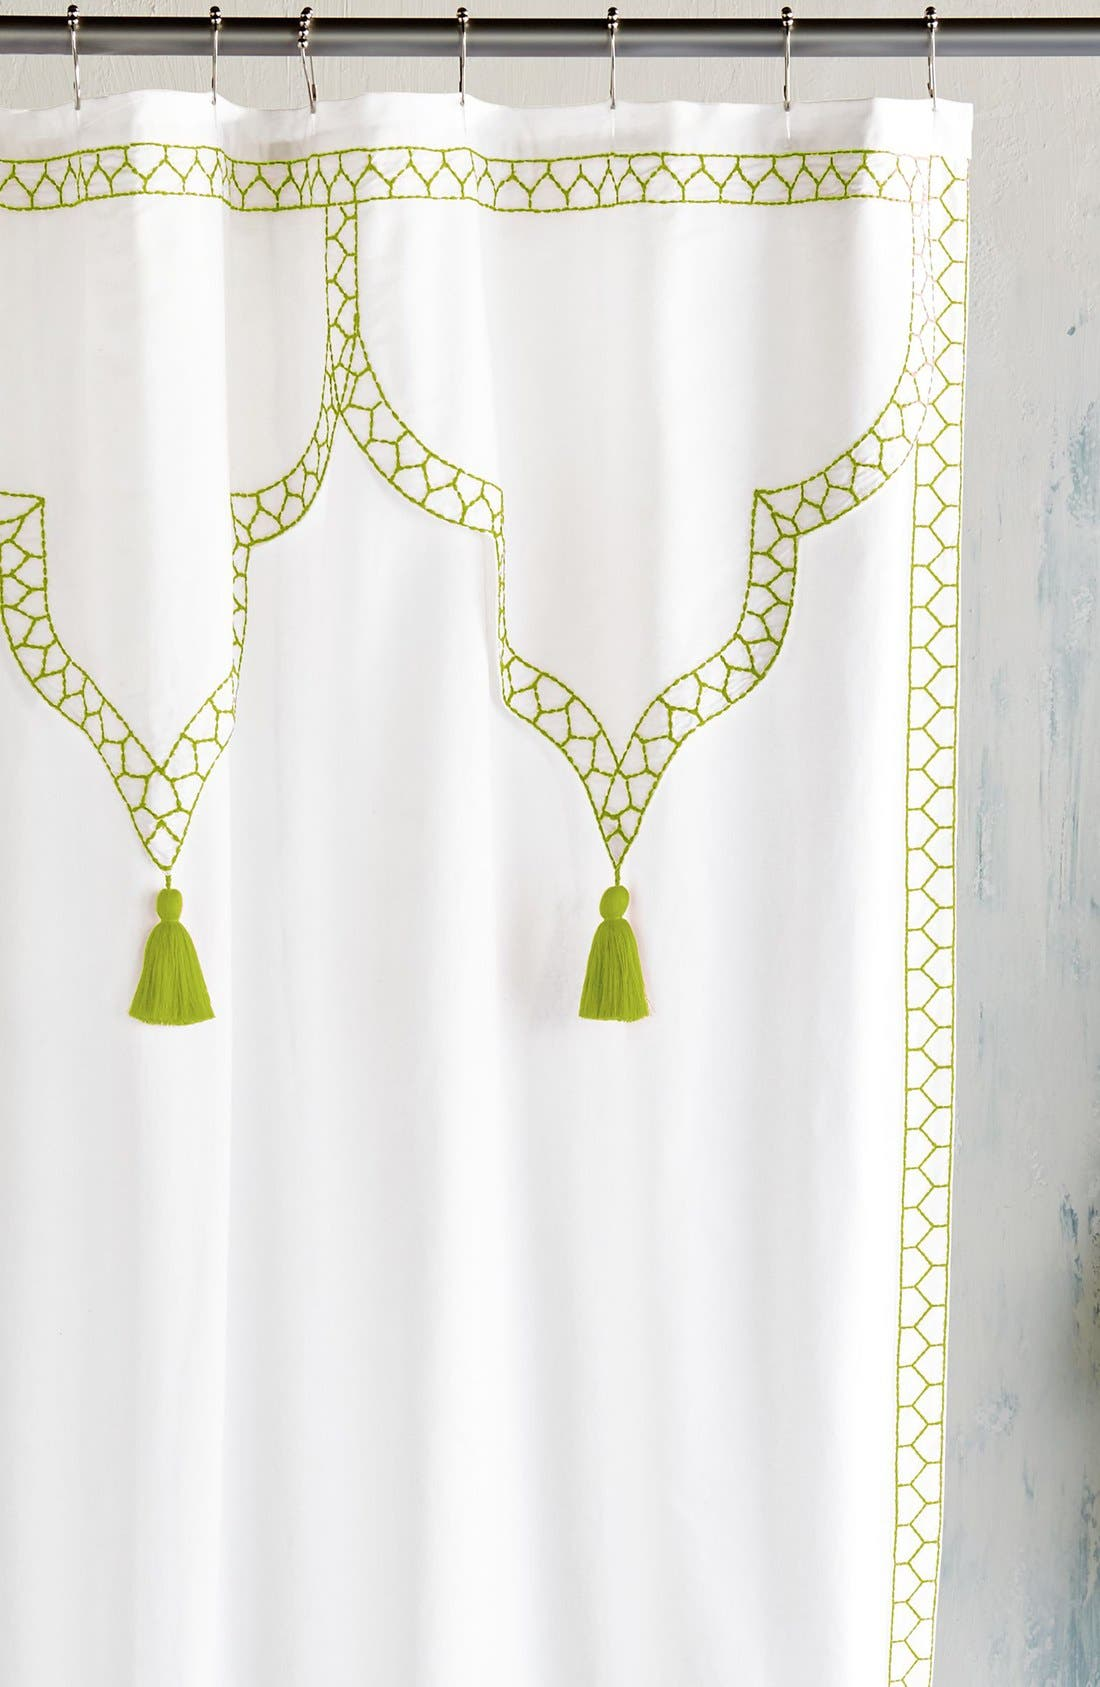 Iswar Shower Curtain,                         Main,                         color, White/ Moss Green